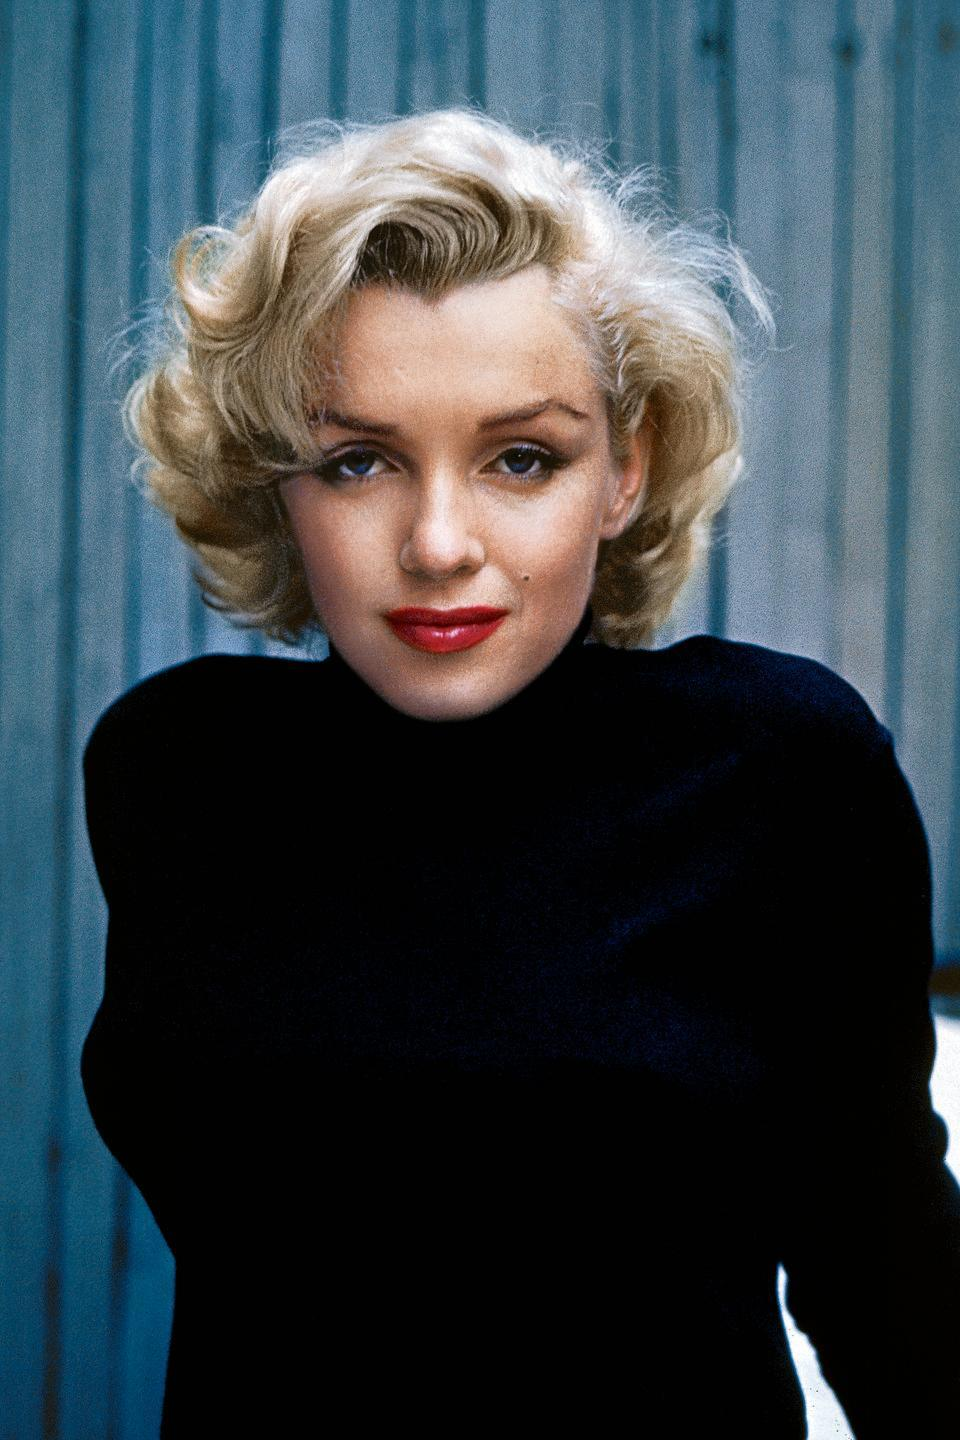 "<p><strong>Born</strong>: Norma Jeane Mortenson<strong><br></strong></p><p>Most probably know by now that the illustrious Marilyn Monroe grew up being called Norma Jeane (she was born to the last name Mortenson, baptized as Baker, and later married into Dougherty). But, do you know the story of how she became Marilyn?</p><p>According to <em><a href=""https://time.com/5368339/marilyn-monroe-real-name-story/"" rel=""nofollow noopener"" target=""_blank"" data-ylk=""slk:Time"" class=""link rapid-noclick-resp"">Time</a></em>, the actress ditched her first husband's surname because a 20th Century Fox studio executive thought that there would be too many interpretations of its pronunciation. Norma Jeane suggested the last name ""Monroe,"" a name on her mother's side of the family, while the studio exec handed her ""Marilyn,"" because she reminded him of 1920s Broadway starlet Marilyn Miller. </p>"